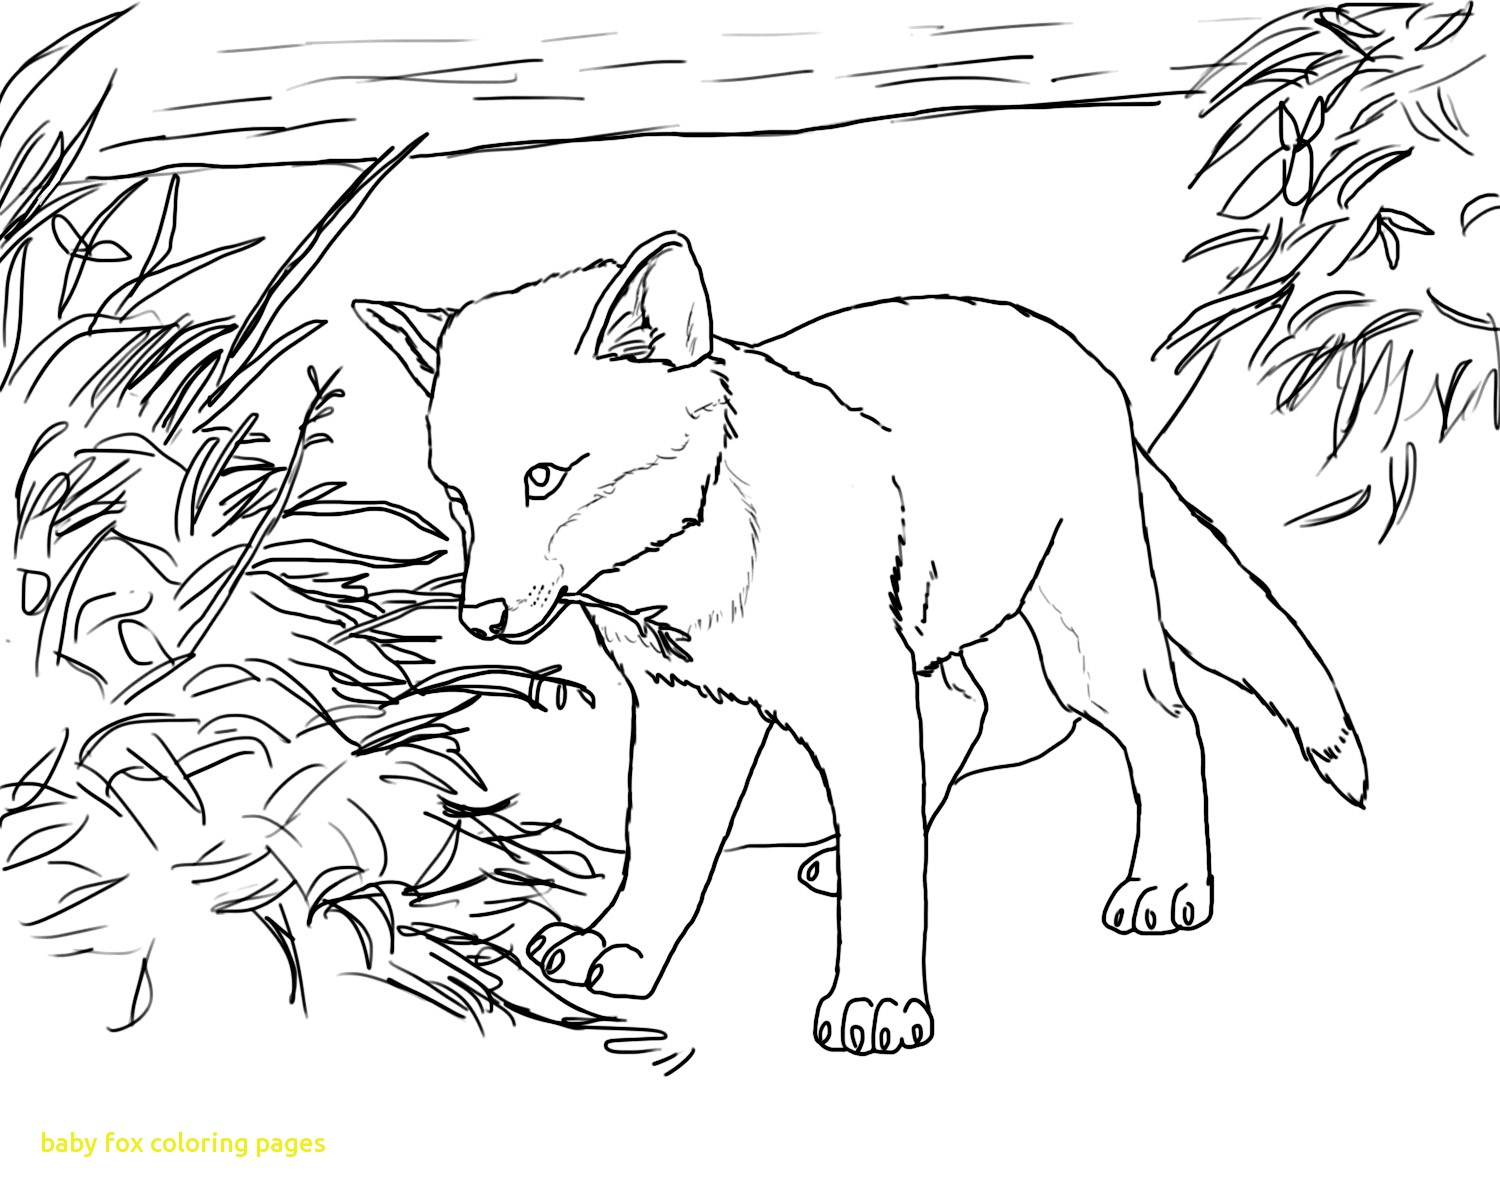 1500x1200 Baby Fox Coloring Pages With 8 Pics Cute Baby Fox Coloring Pages